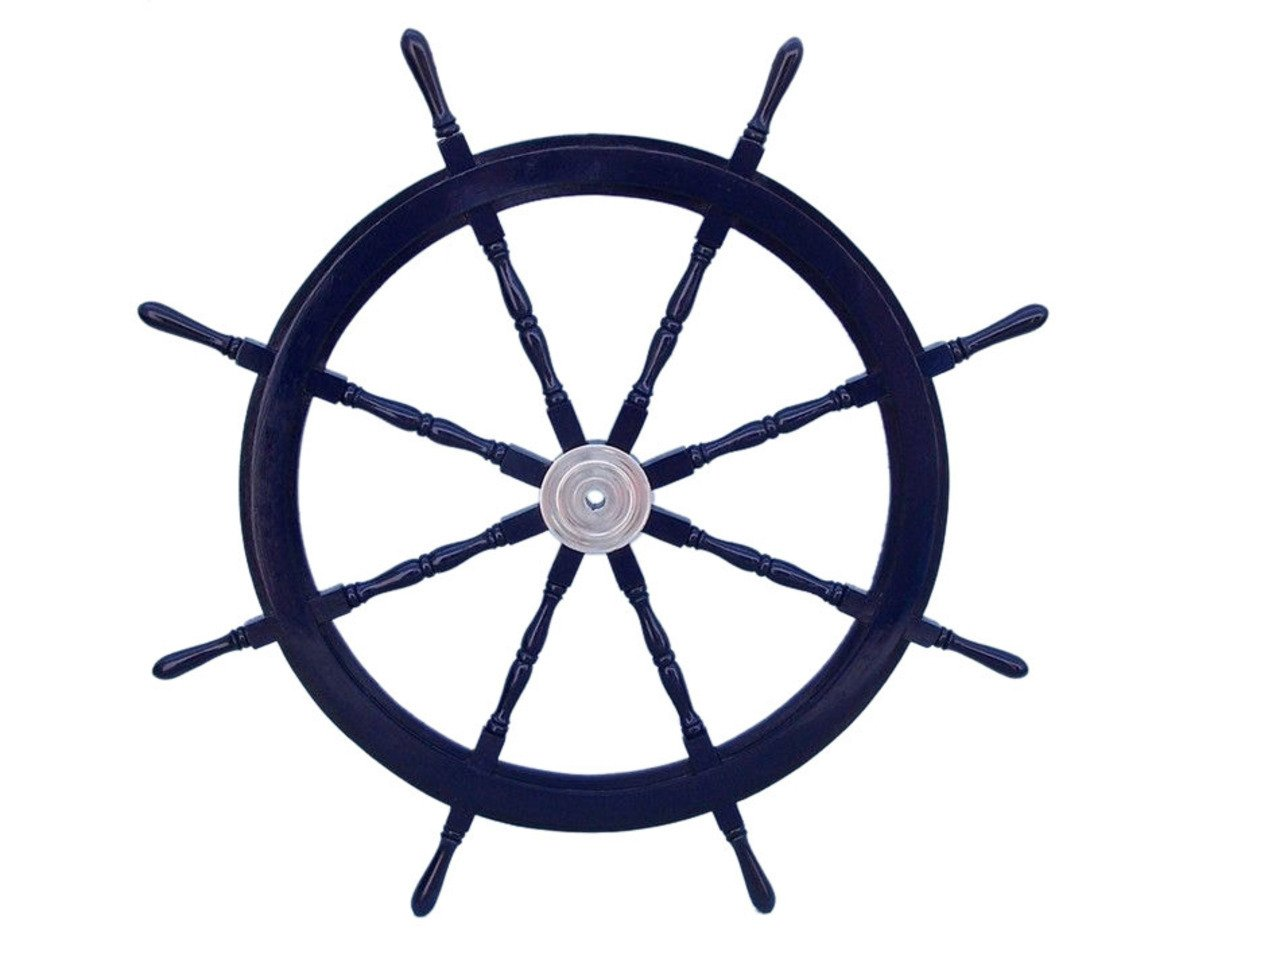 [ハンプトンノーティカル]Hampton Nautical Deluxe Class Dark Blue Wood and Chrome Decorative Ship Steering Wheel 48 ation [並行輸入品] 48 inch dark blue B00OK7LKKI